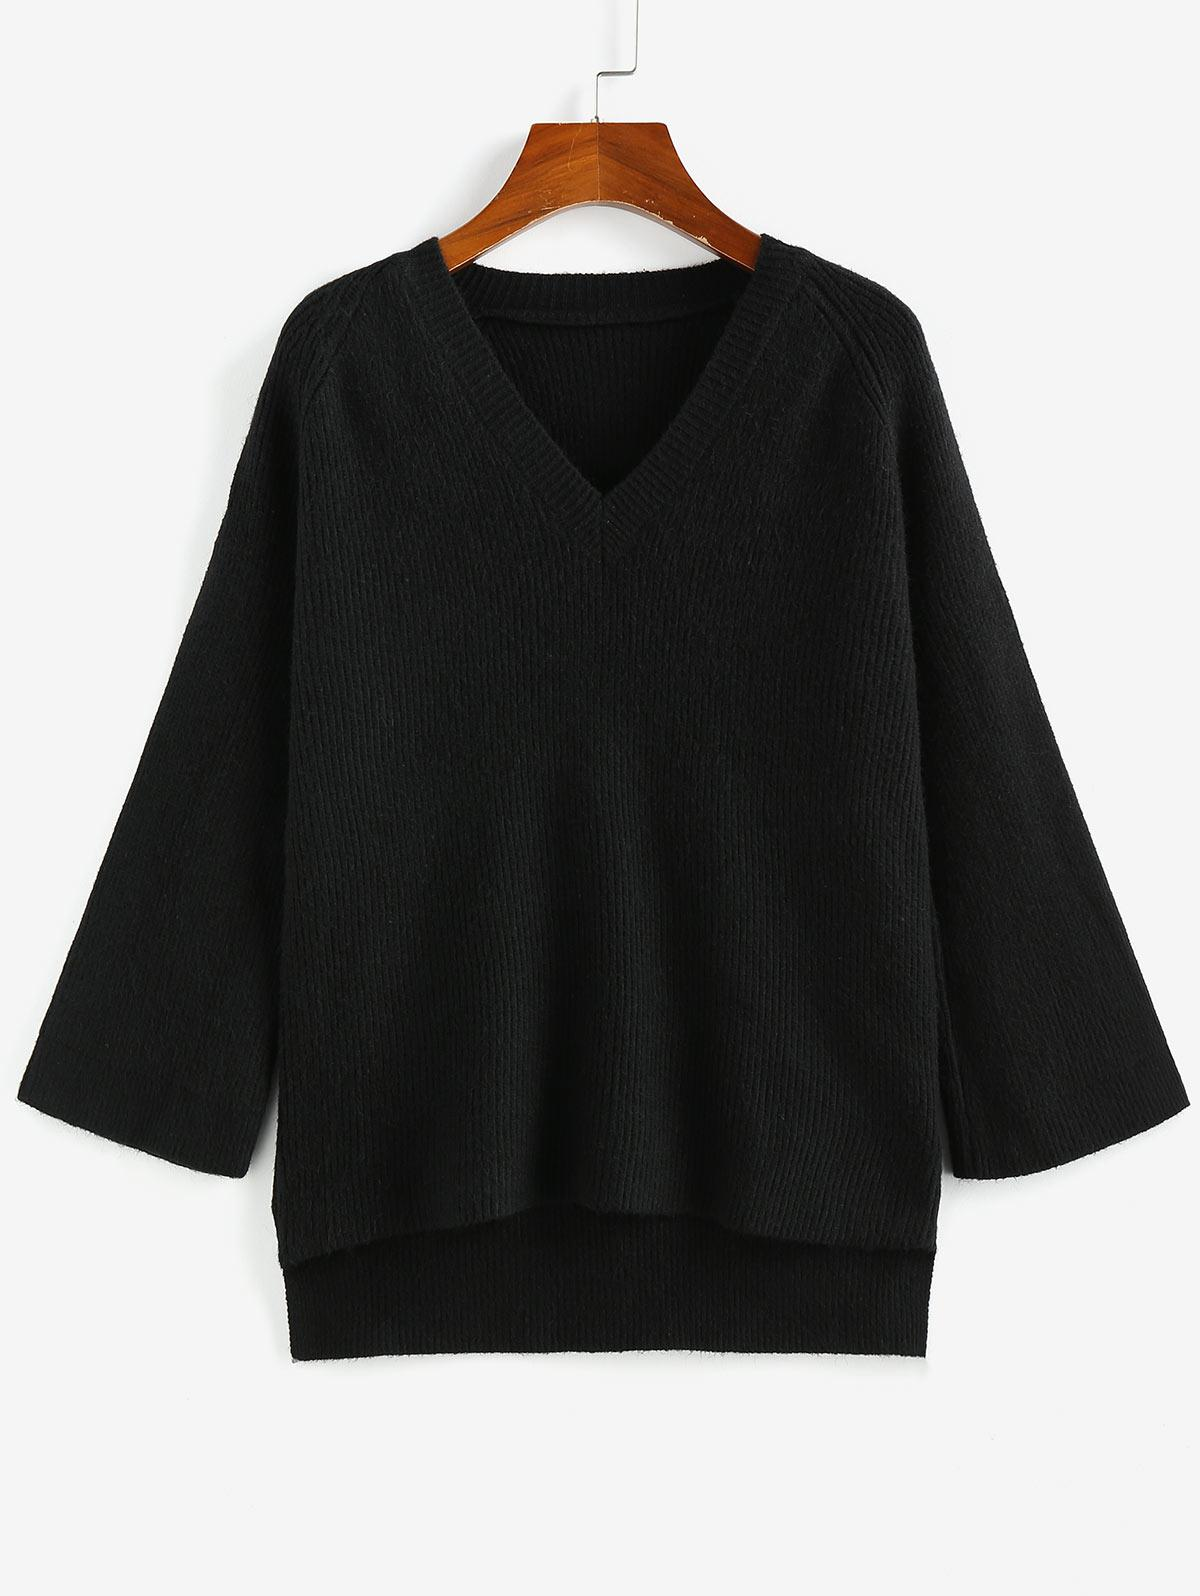 Pull-over Manches Raglan à Ourlets Haut Bas